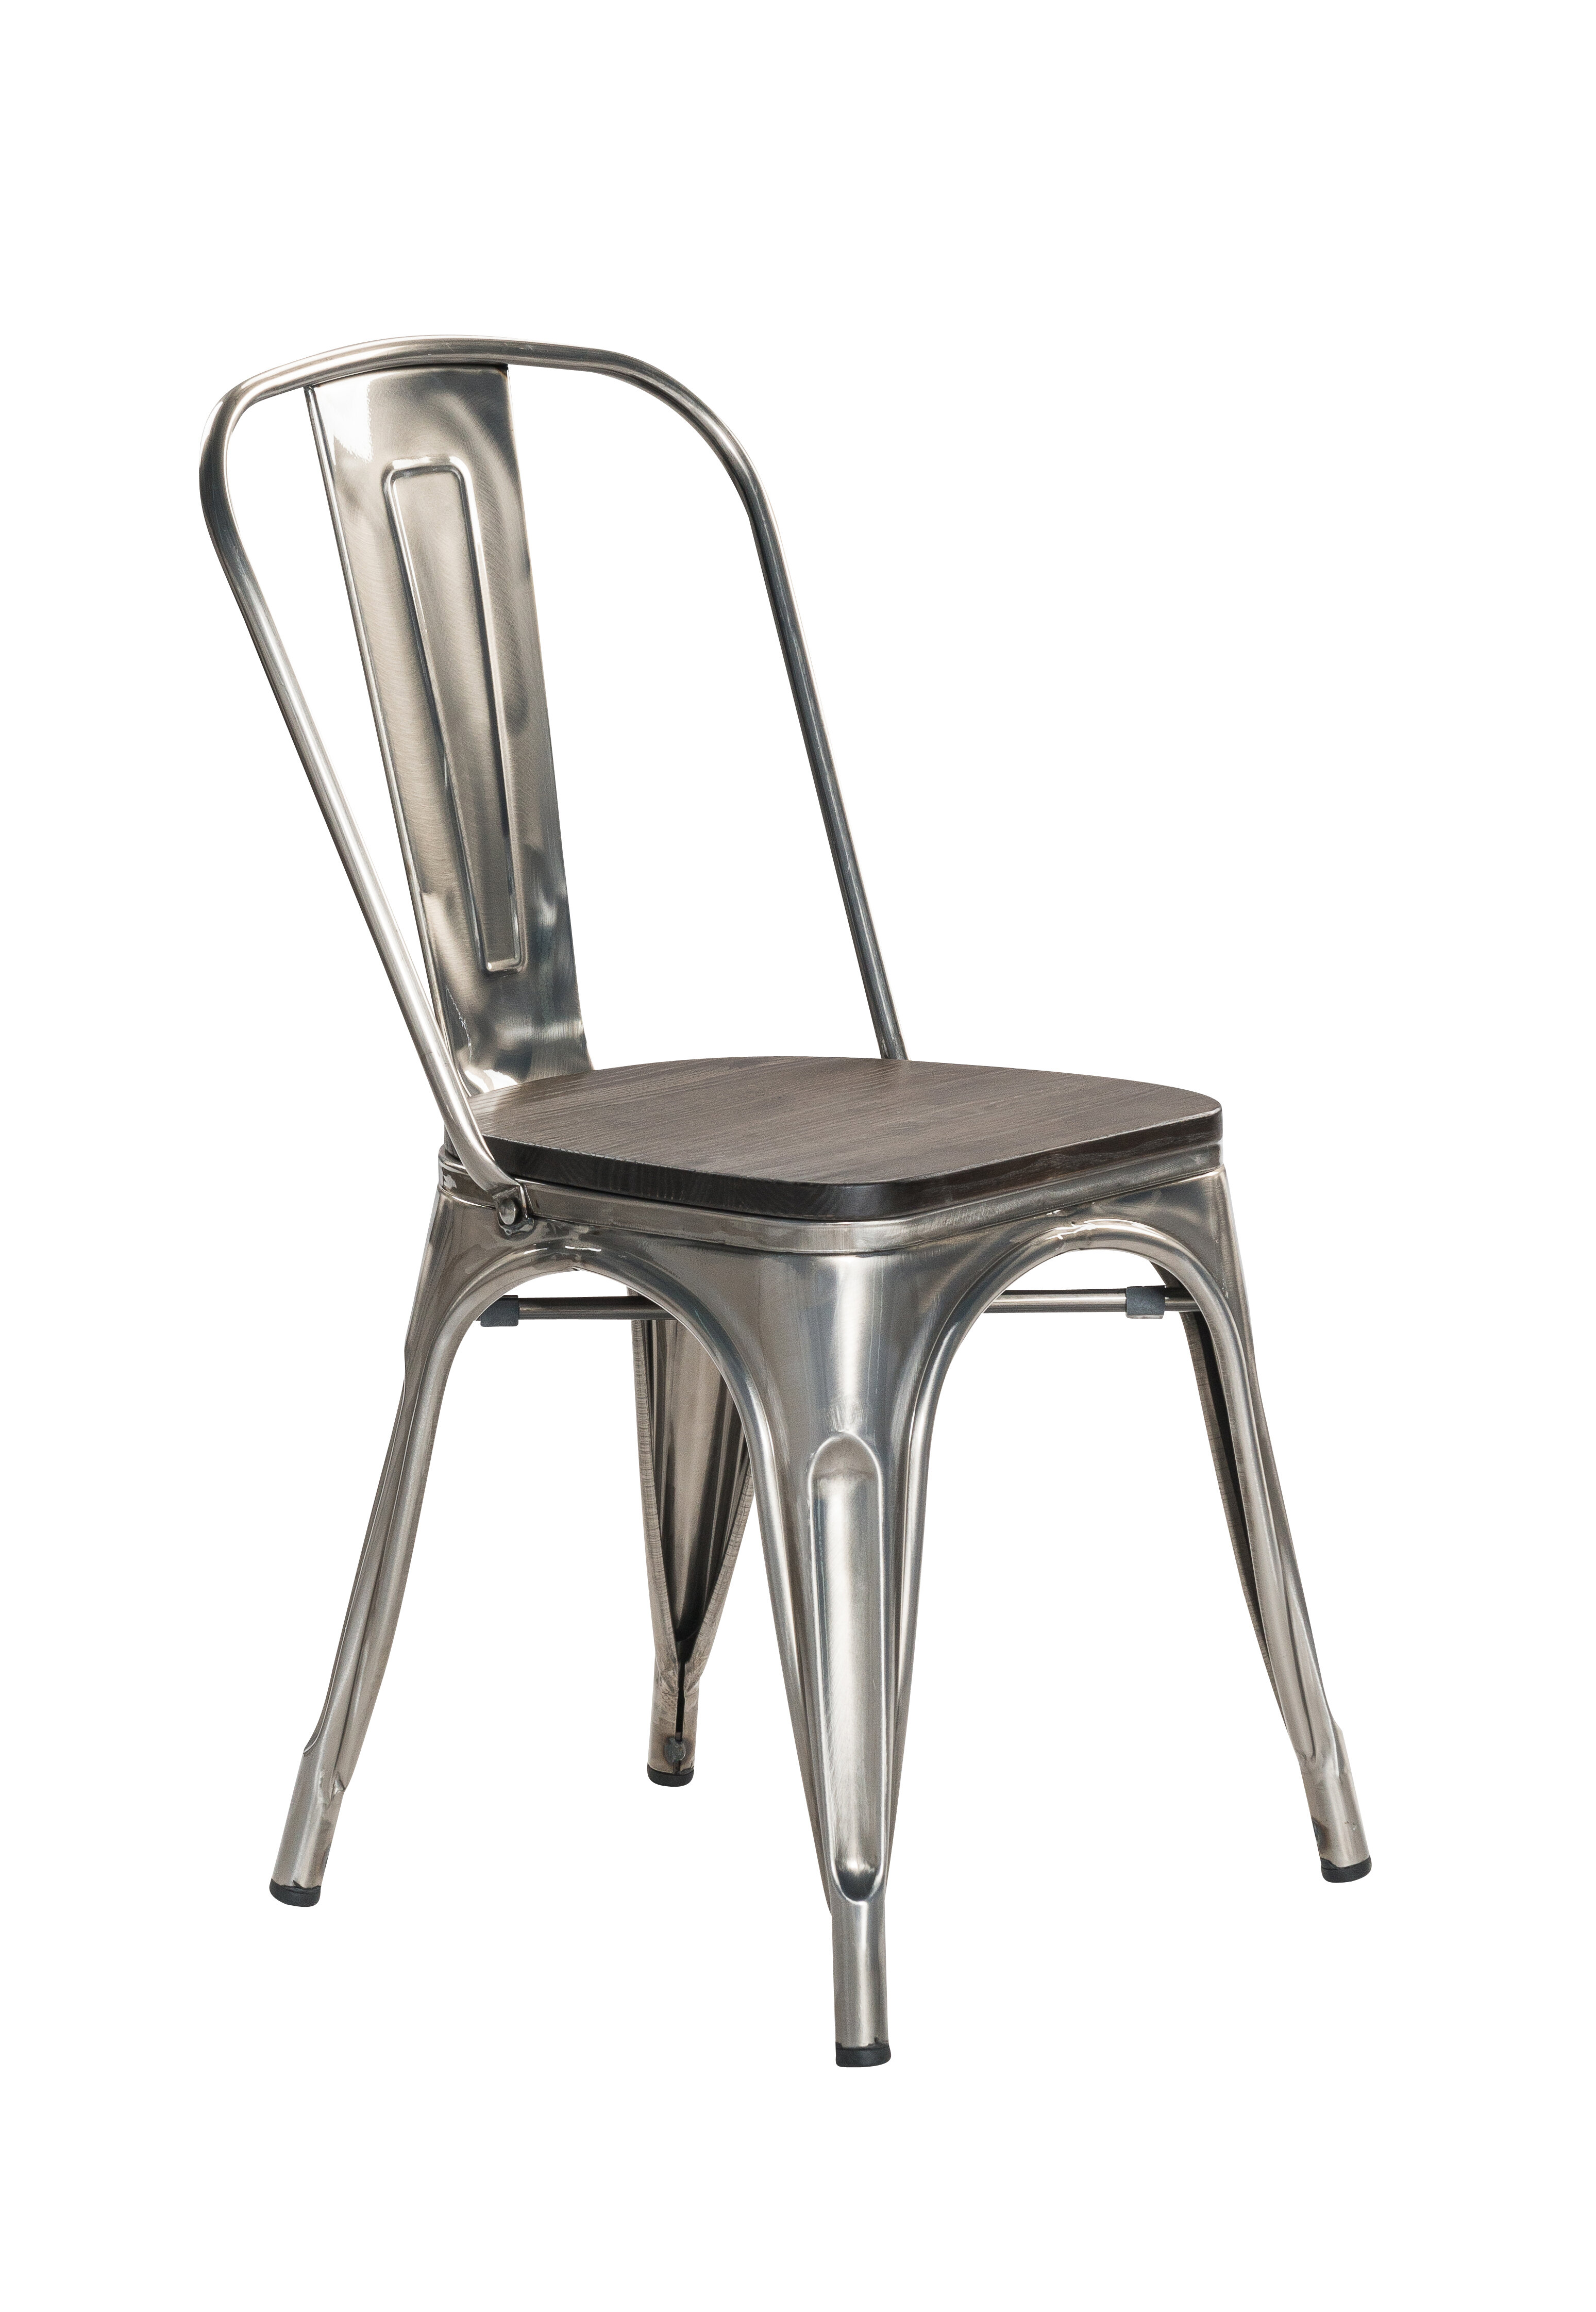 17 Stories Patio Dining Chairs You Ll Love In 2021 Wayfair